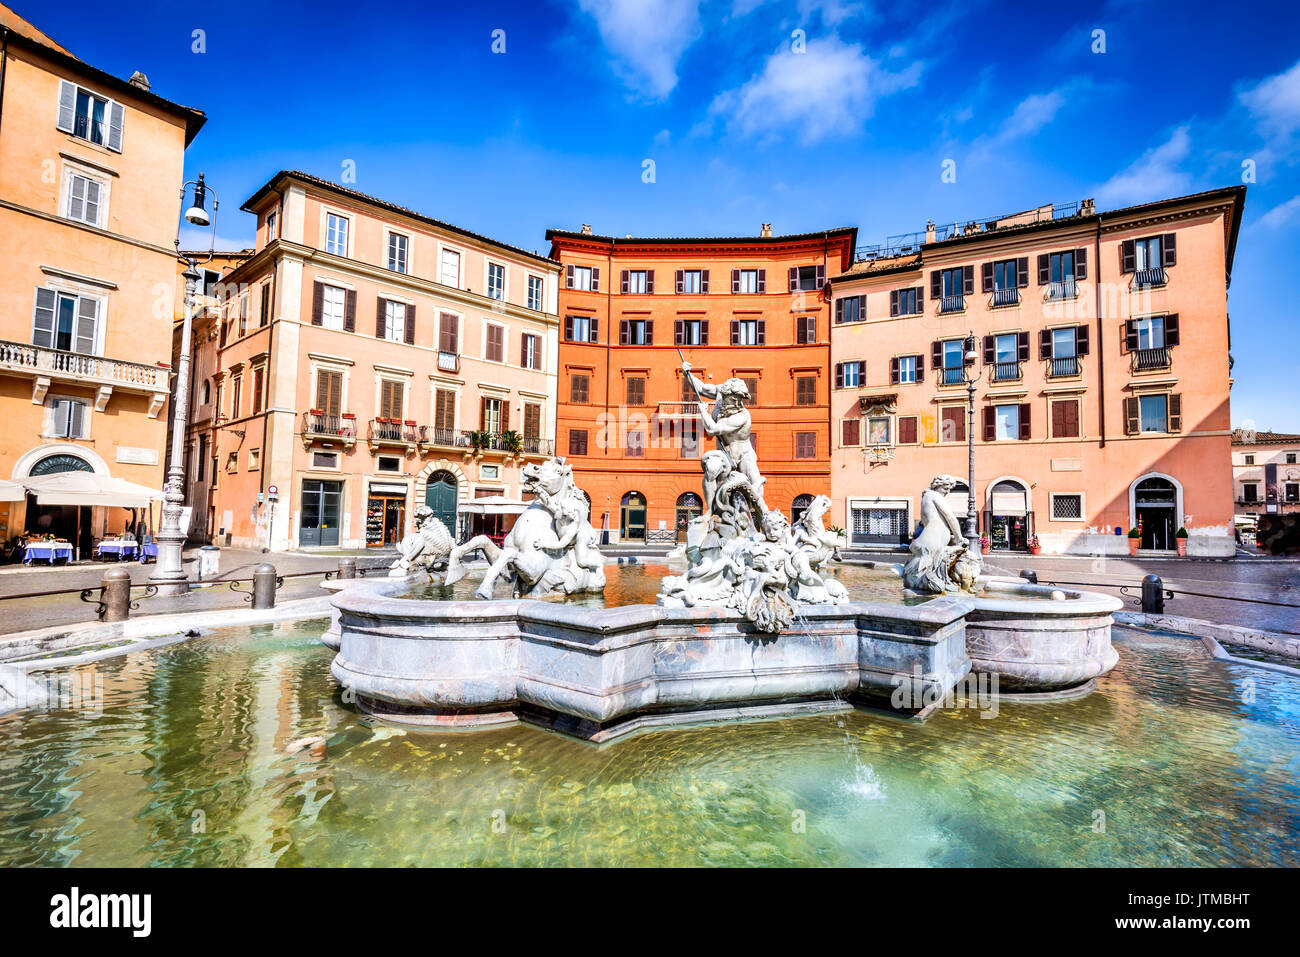 Rome, Italy. Piazza Navona and The Fountain of Neptune from 1576 with his trident fight. - Stock Image